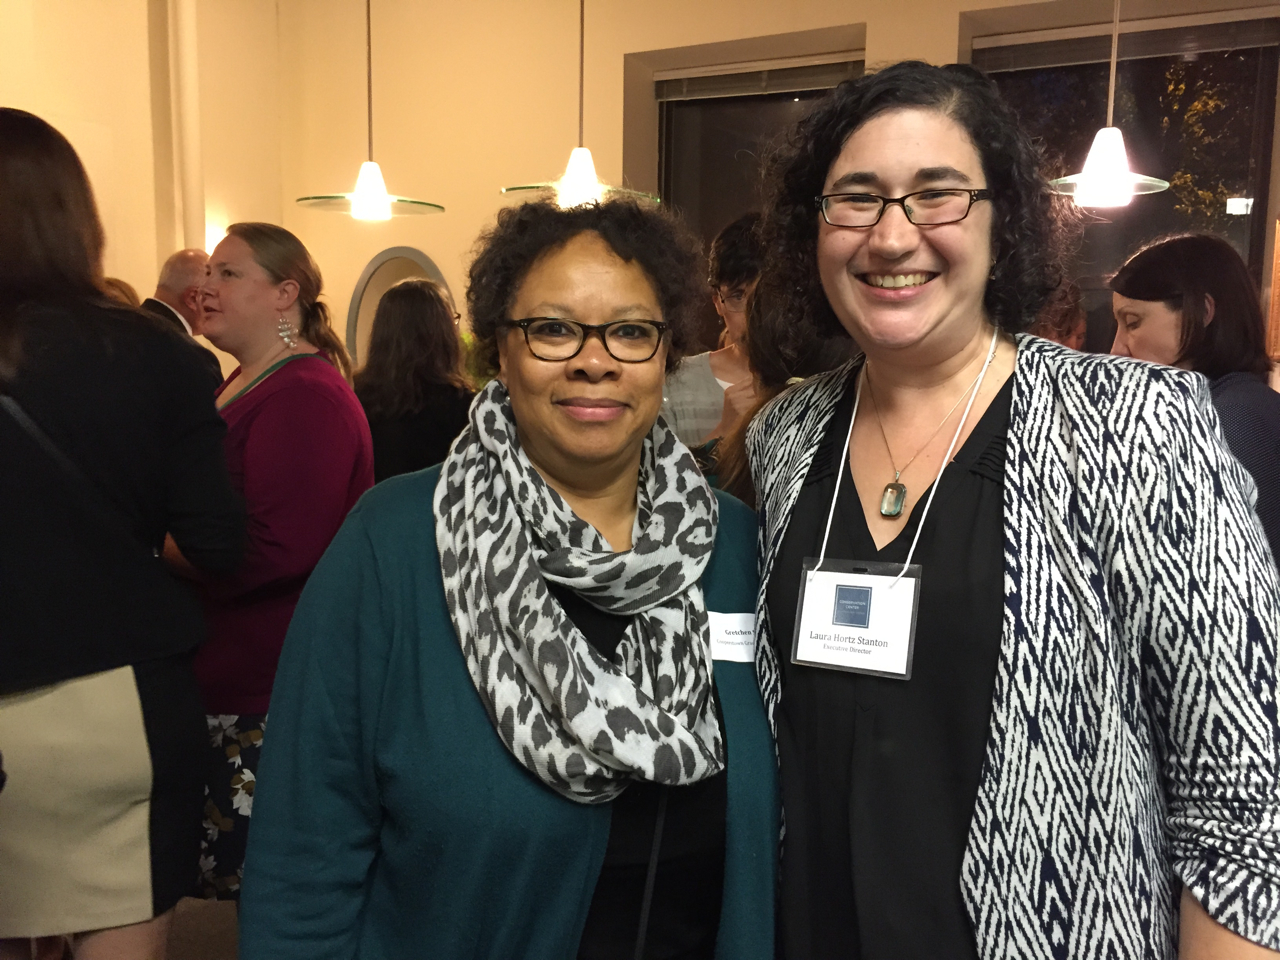 On left, Gretchen Sorin, President of MAAM; on the right, Laura Hortz Stanton, Executive Director of the Conservation Center. Photo by Gretchen Sorin.